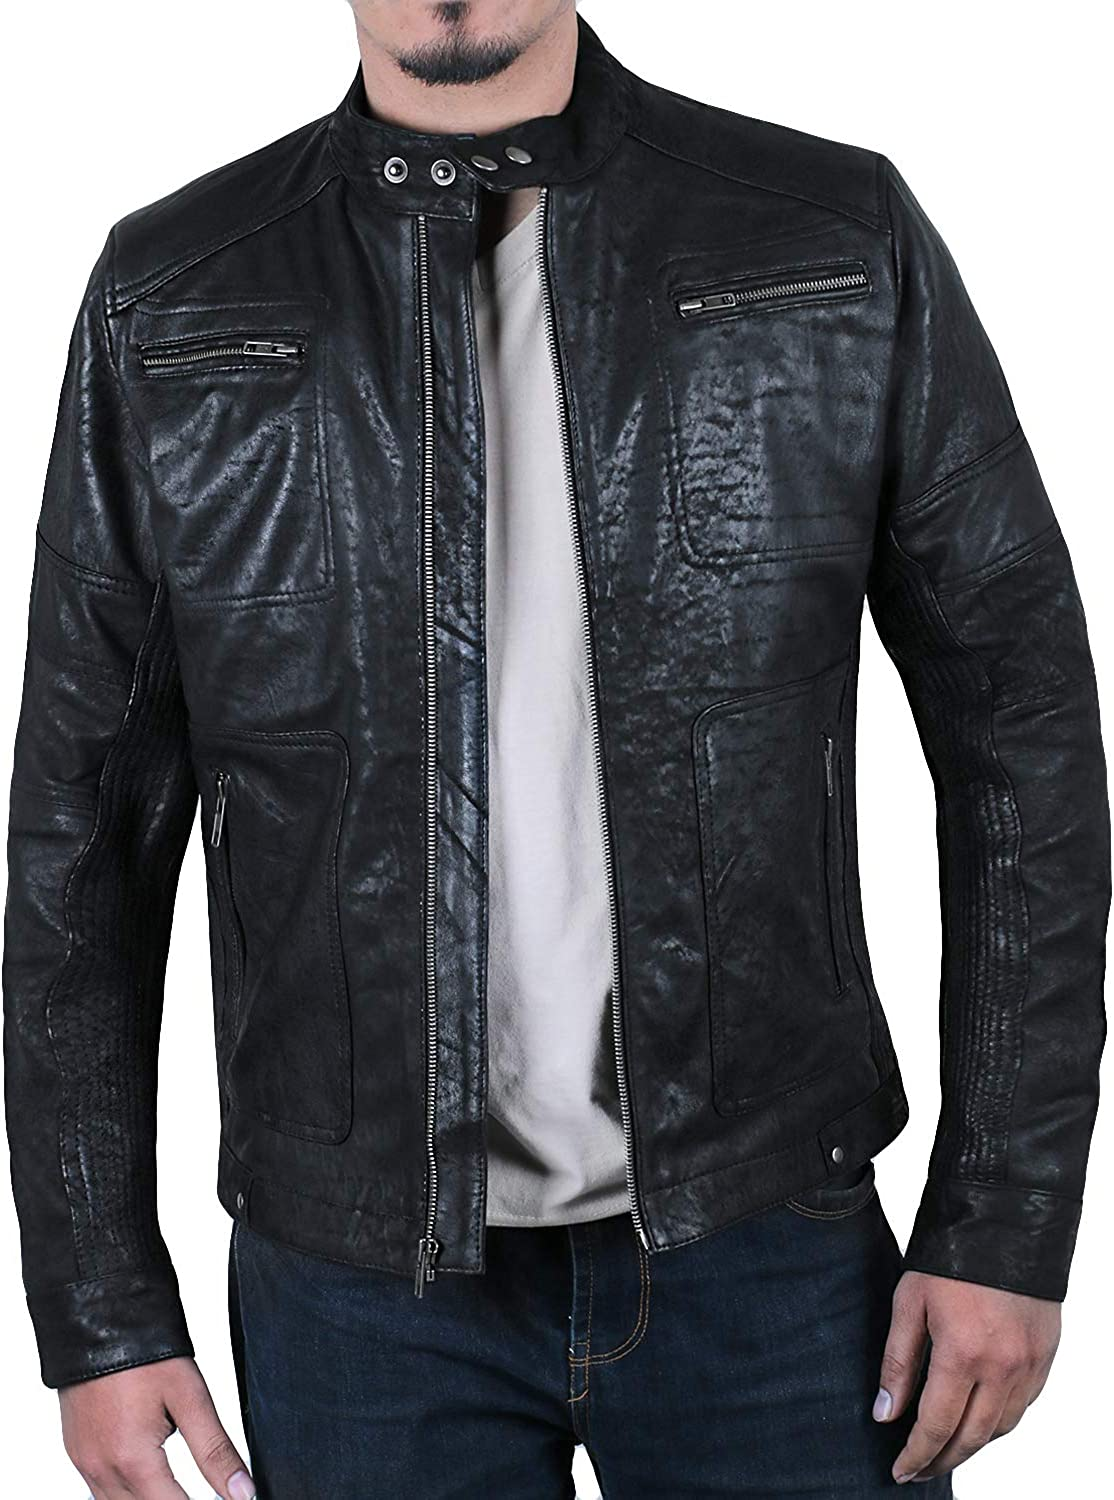 Laverapelle Men's Genuine Lambskin Jacket Black New Max 76% OFF products world's highest quality popular Racer Leather